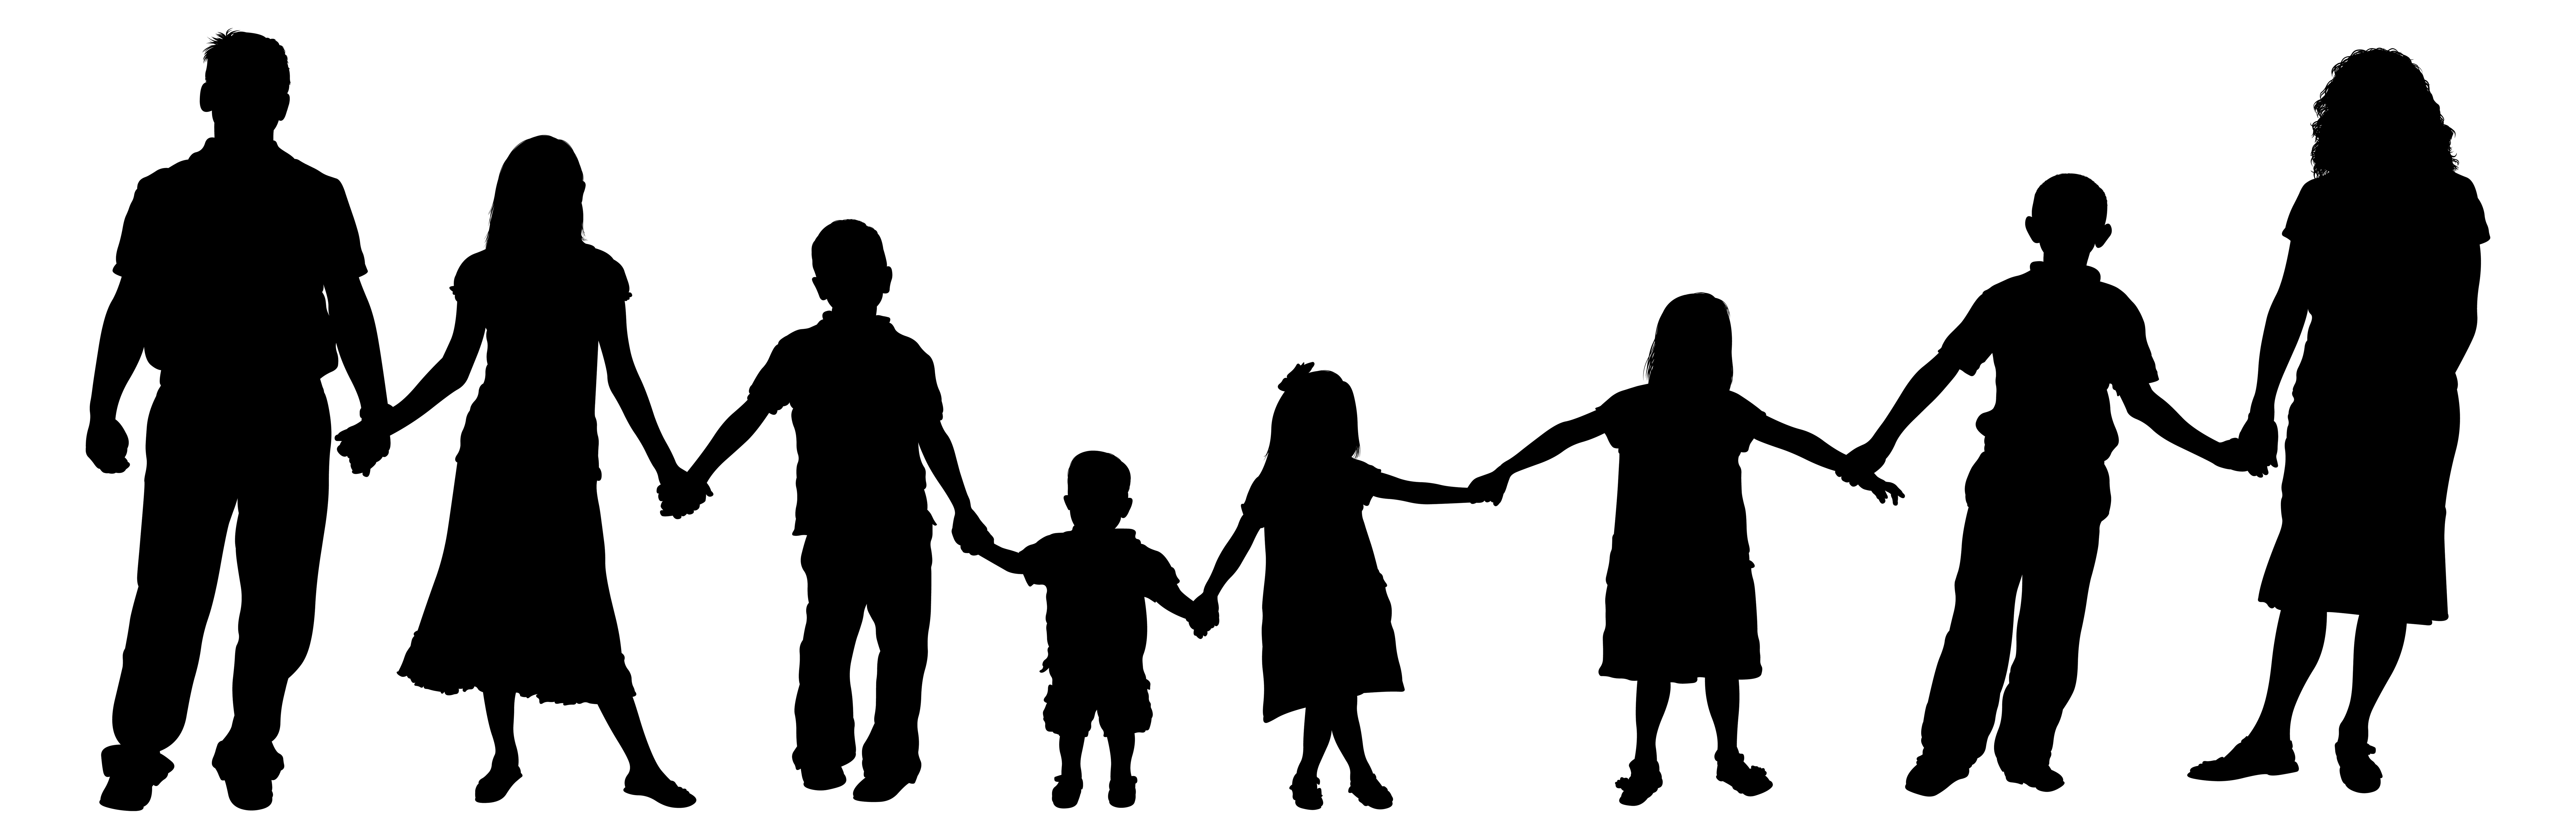 11058x3600 Free Clipart Silhouette Family With Young Children Holding Hands